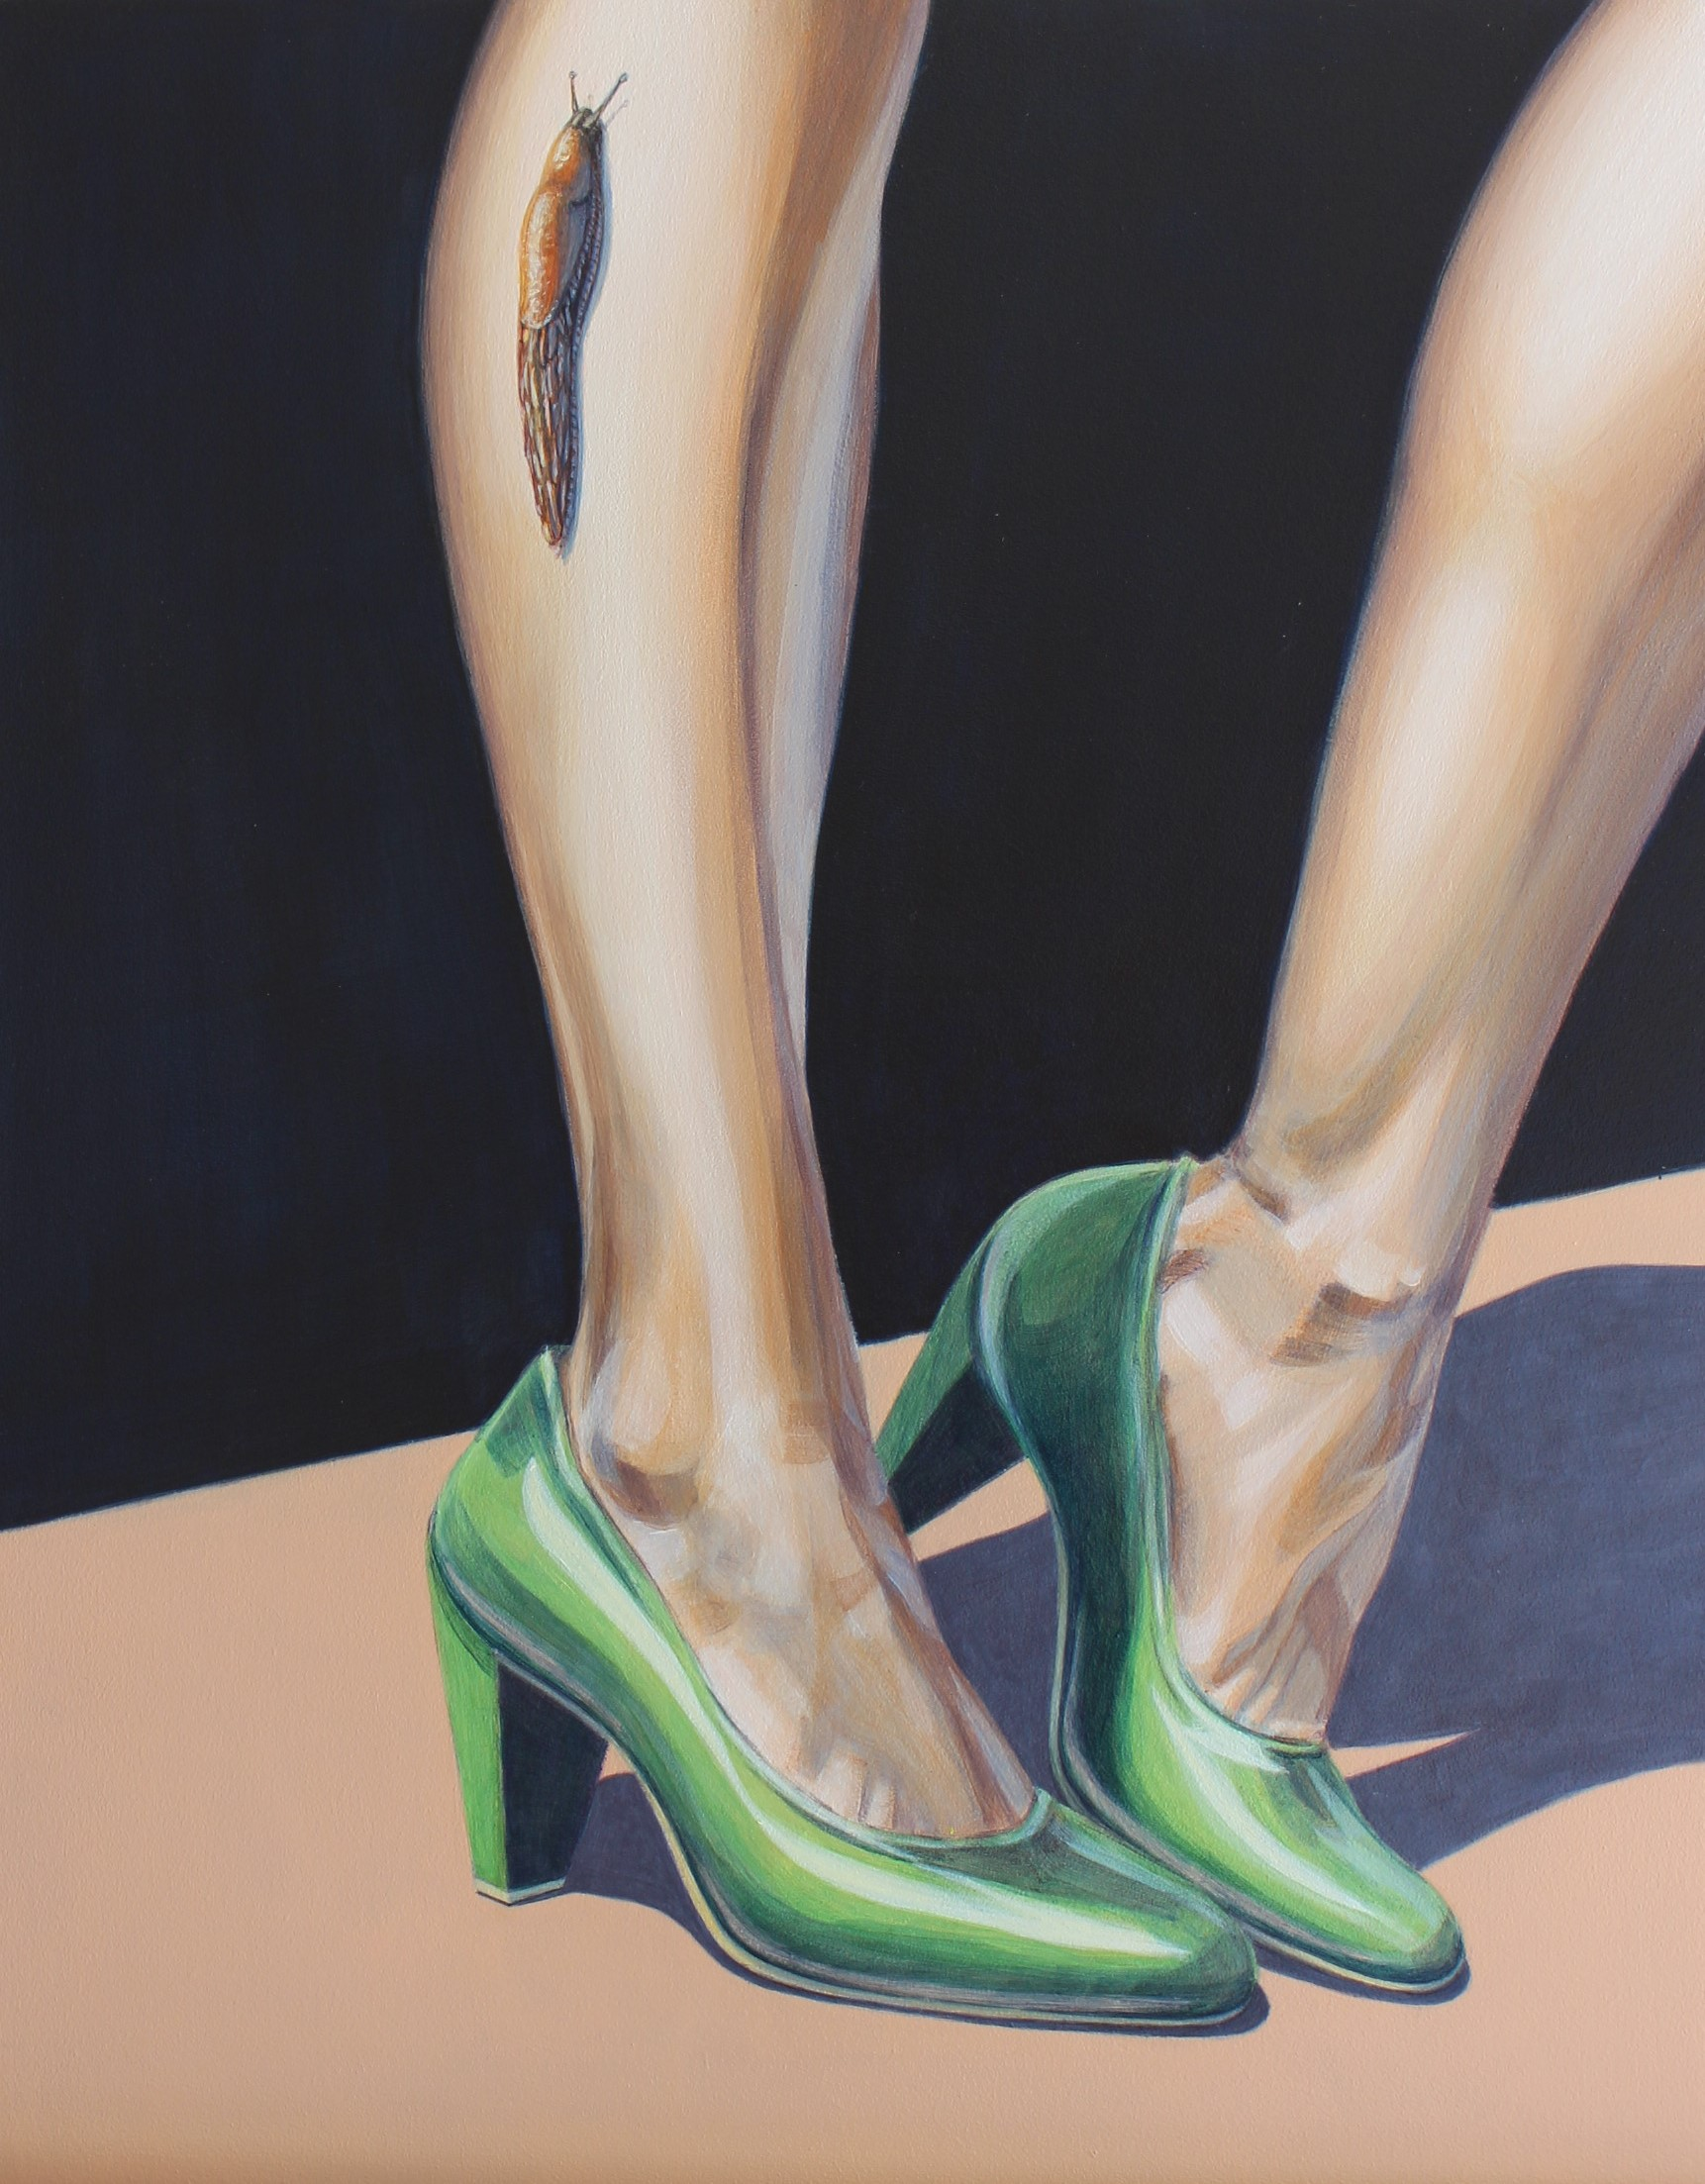 'The Creep' Isabelle Mathys, Acrylic on board SOLD (408x319mm)